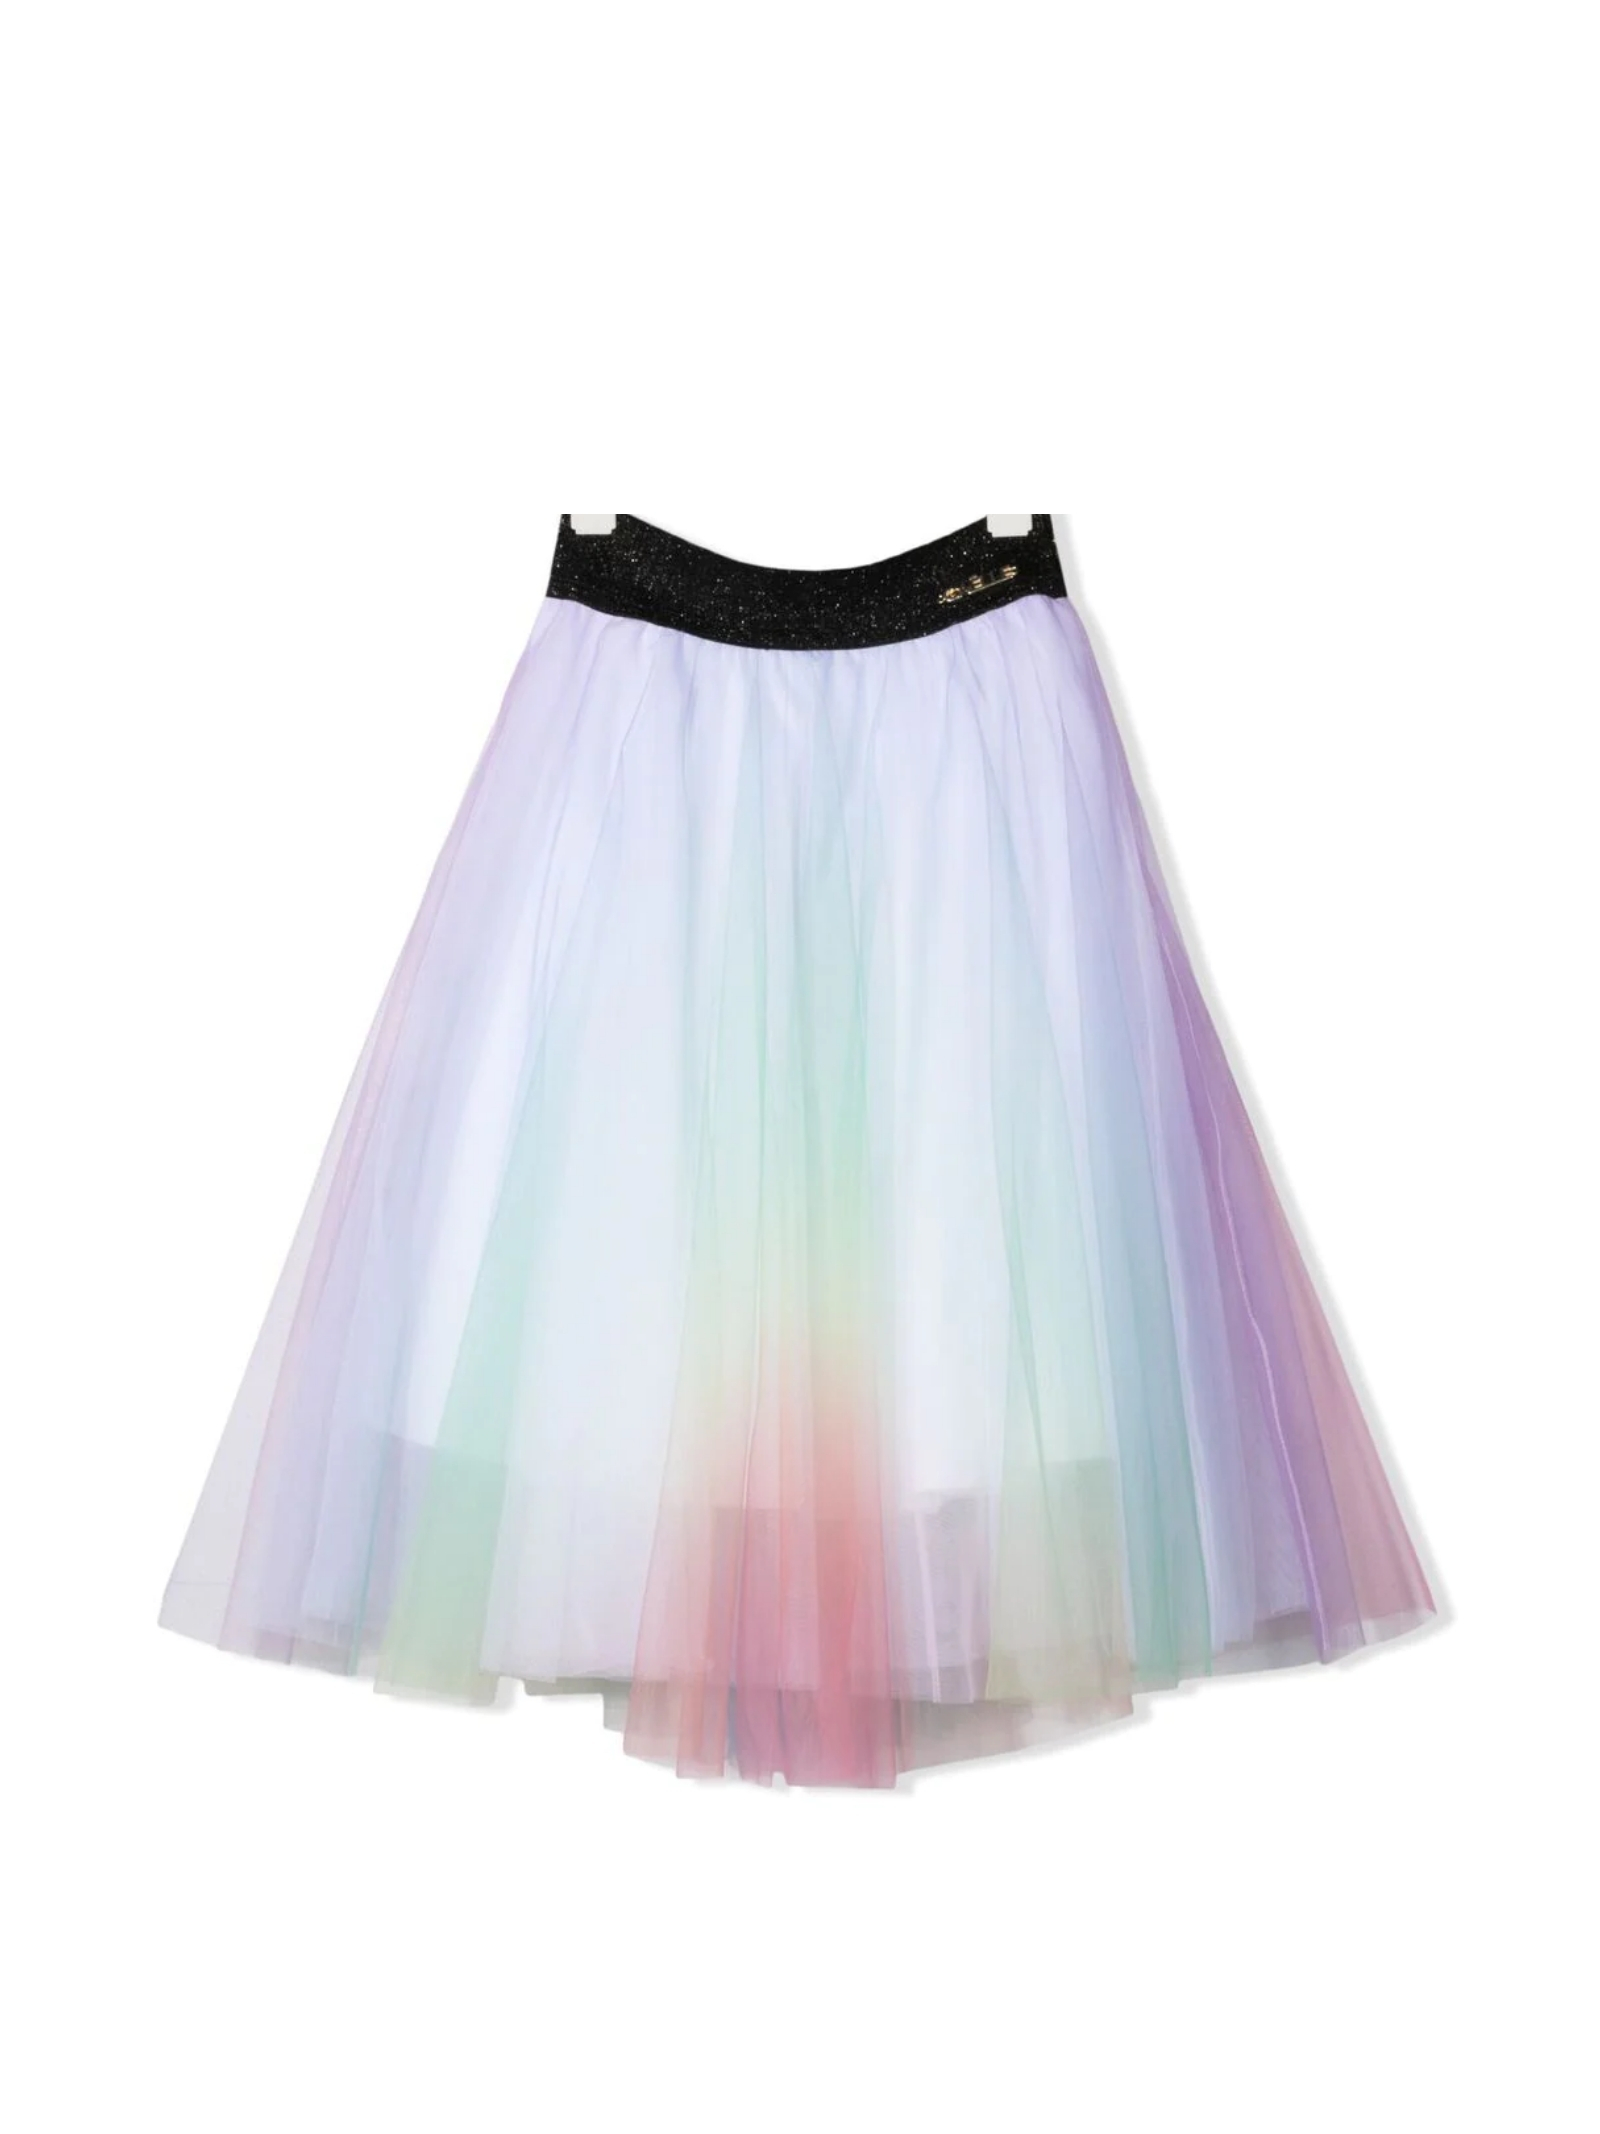 Gonna Lunga Unicorno Bambina GAËLLE PARIS KIDS | Gonne | 2746G0342RAINBOW